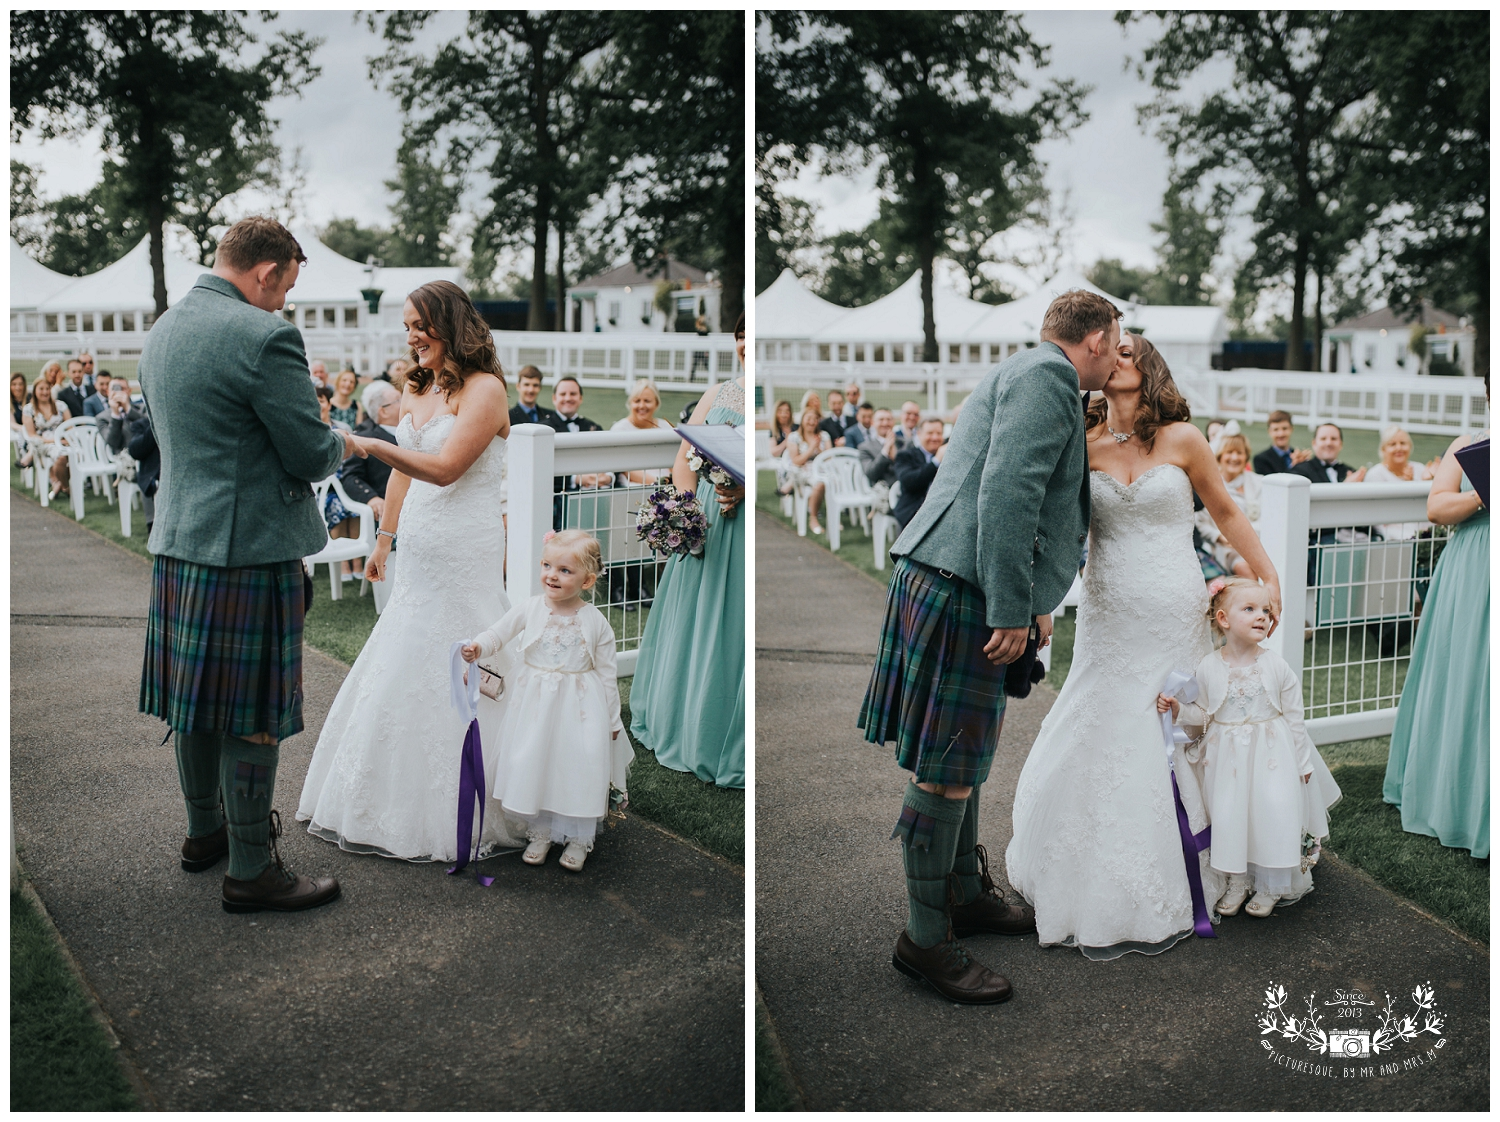 Hamilton Park Racecourse  wedding photography, Picturesque by Mr and Mrs M_0038.jpg